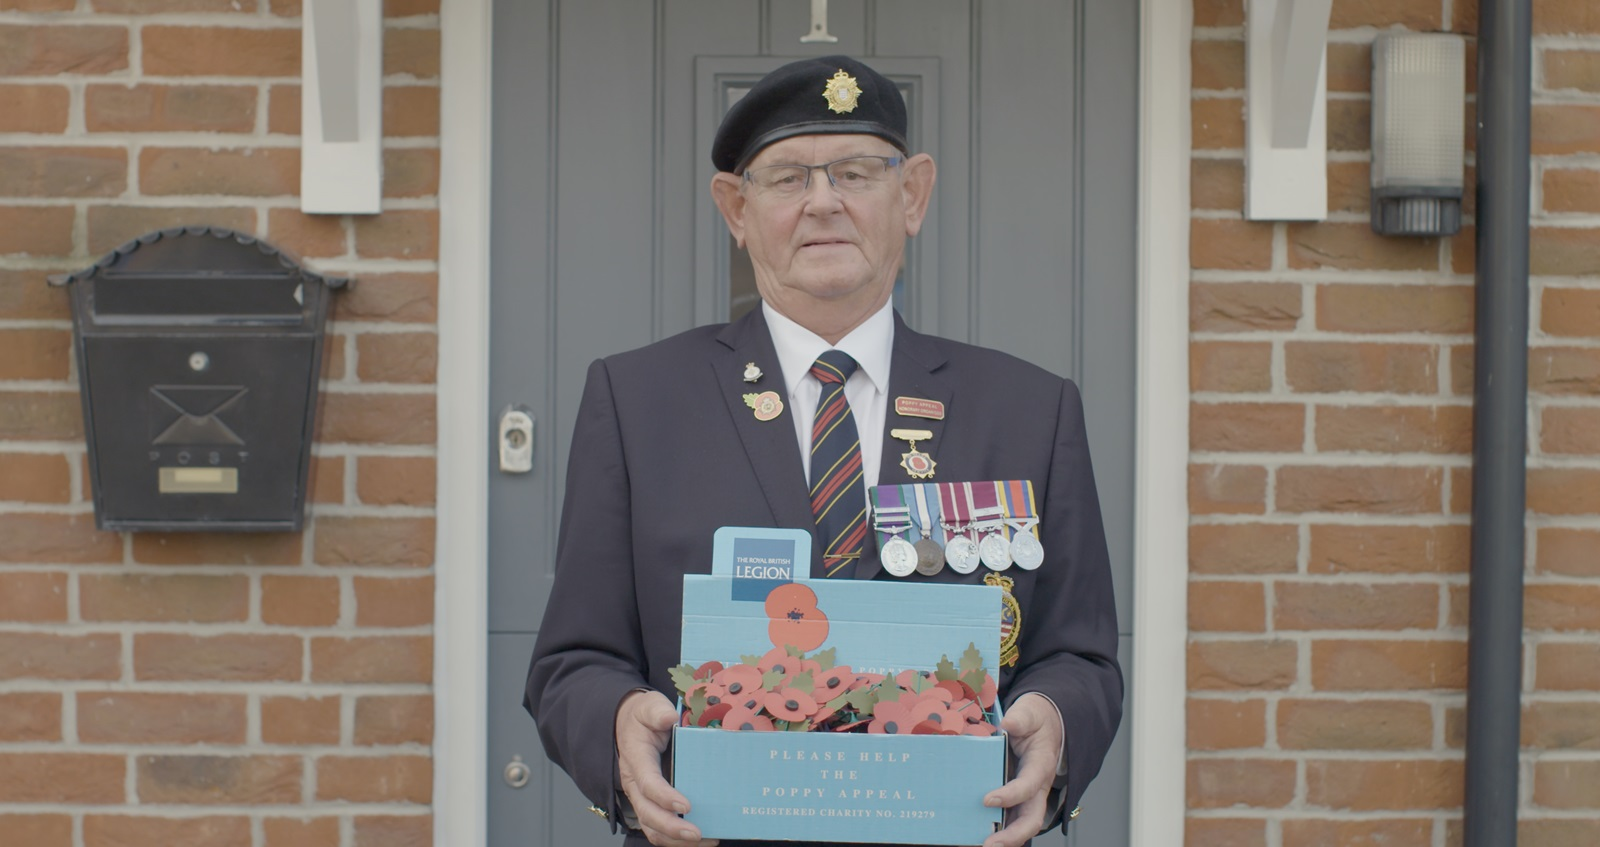 Mark Cockram collecting for the Poppy Appeal